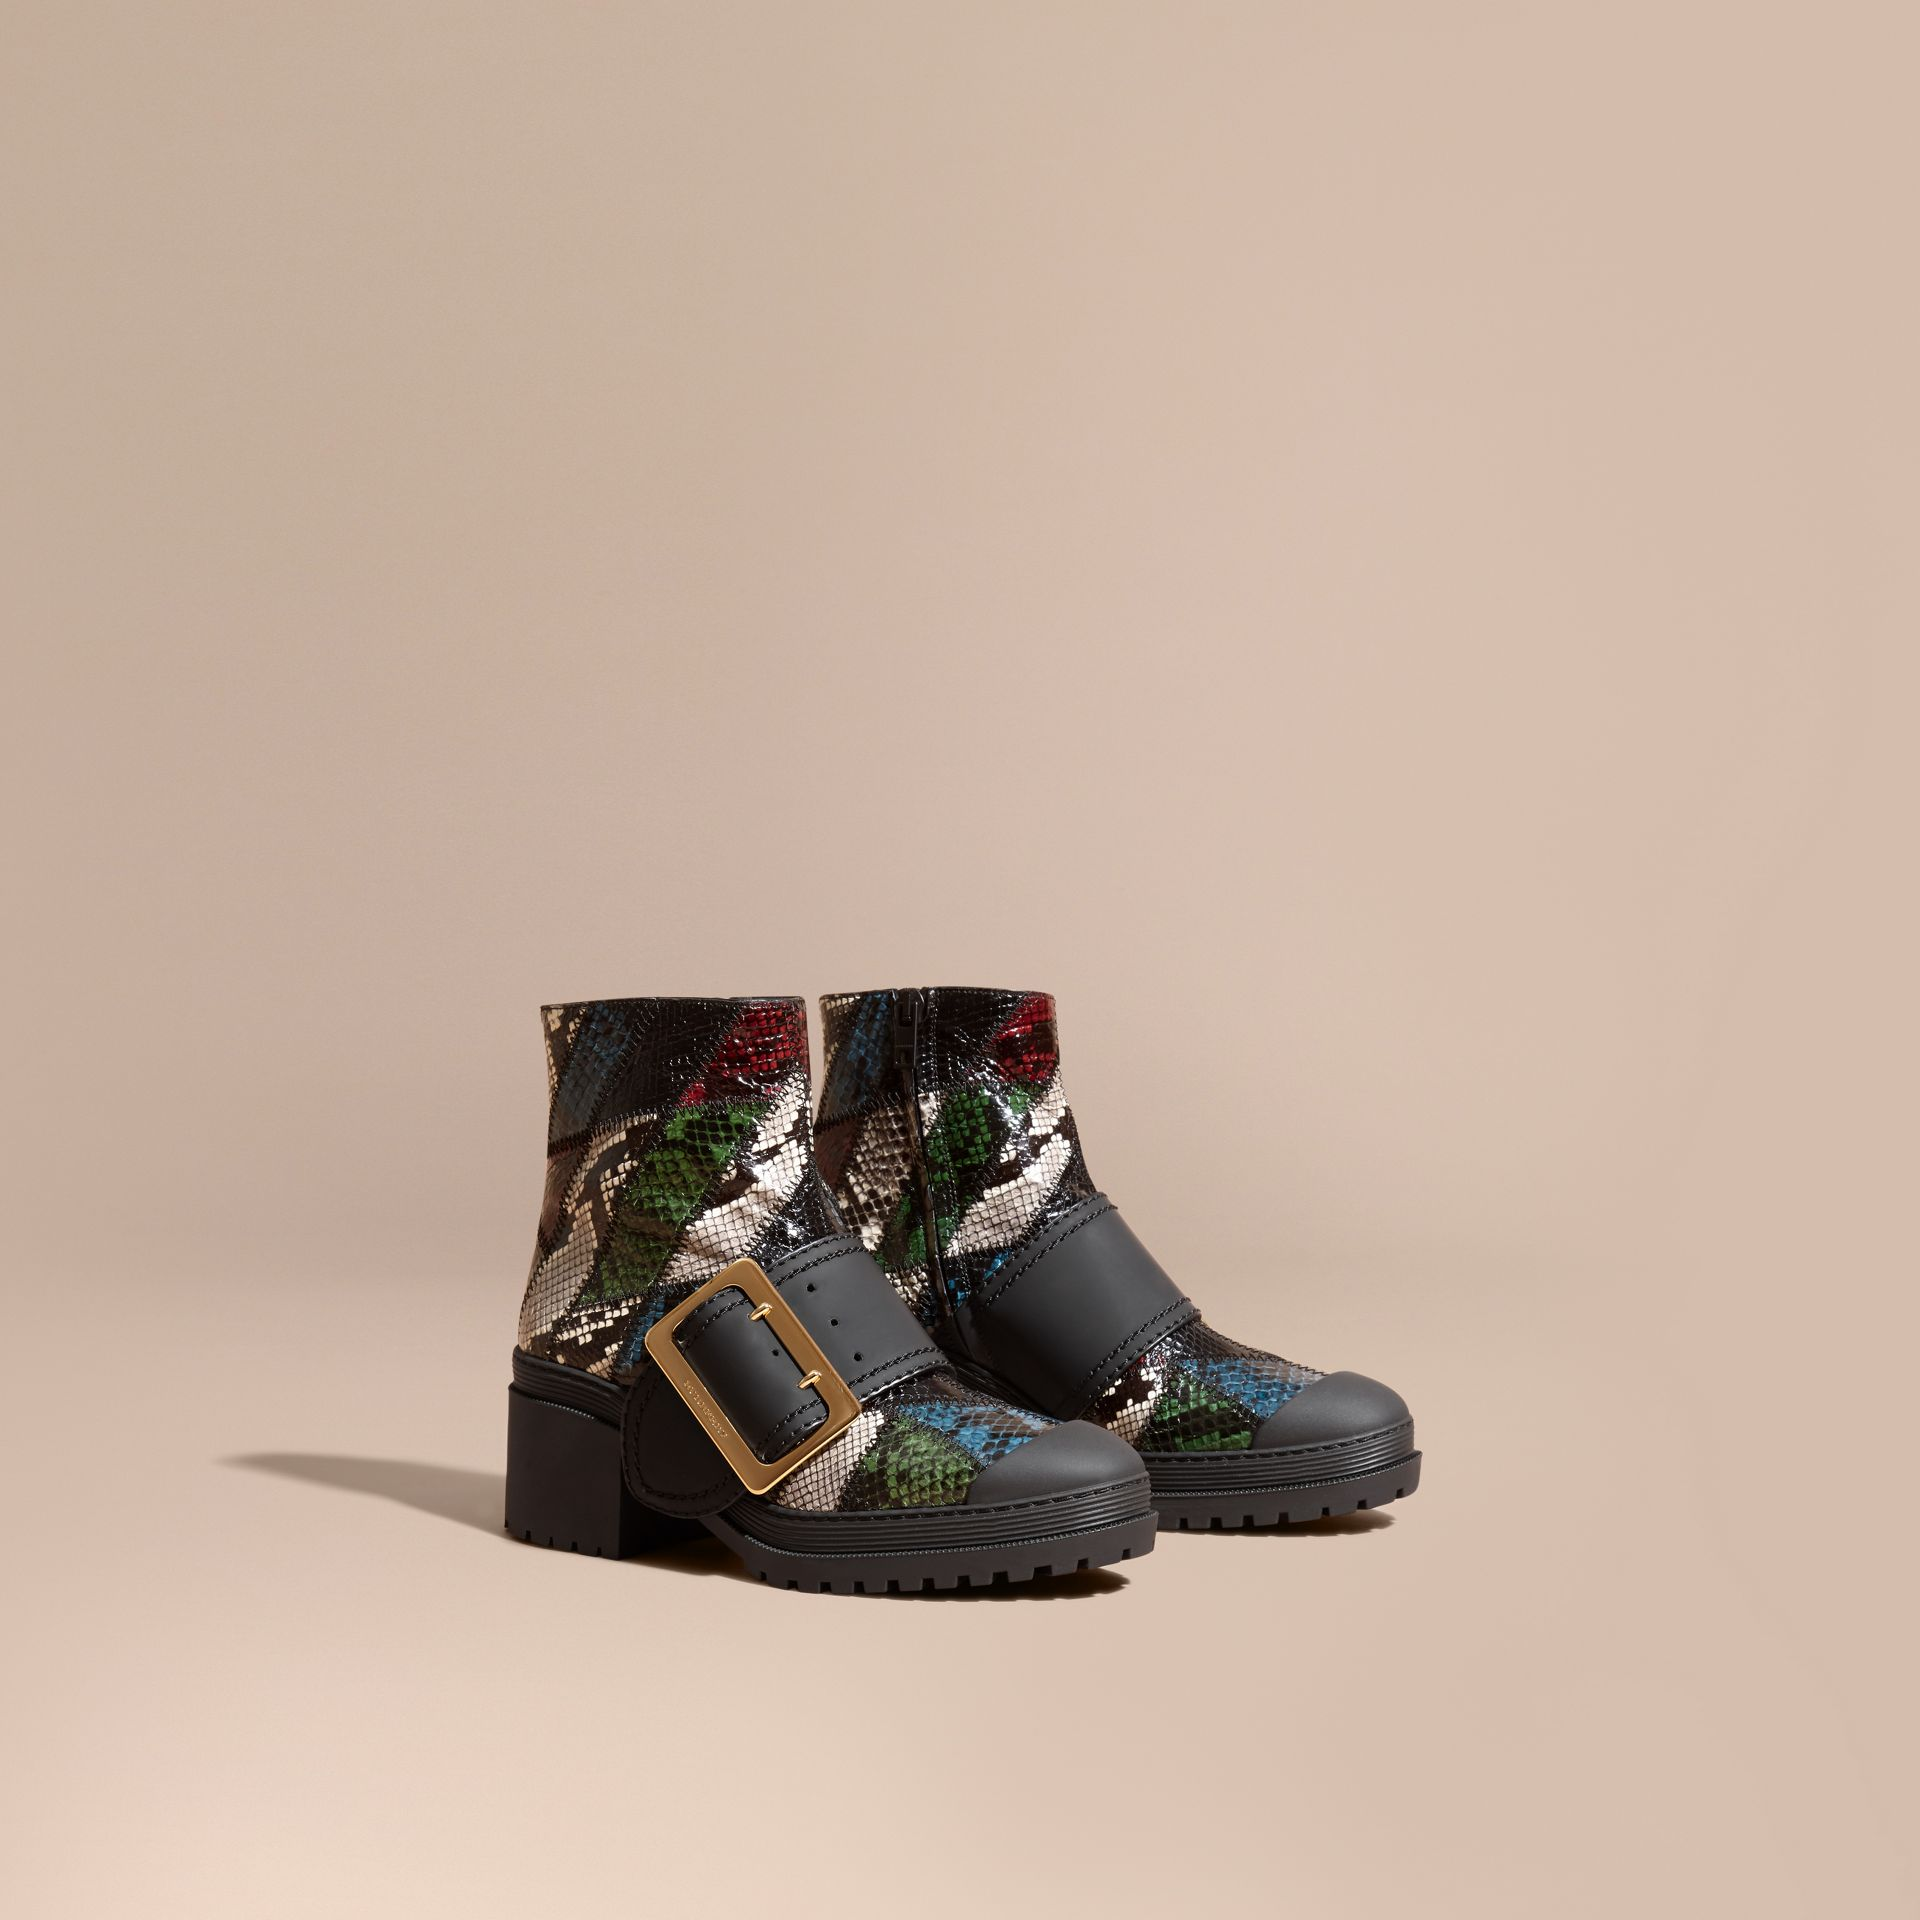 Mineral blue/black The Buckle Boot in Snakeskin and Rubberised Leather - gallery image 1